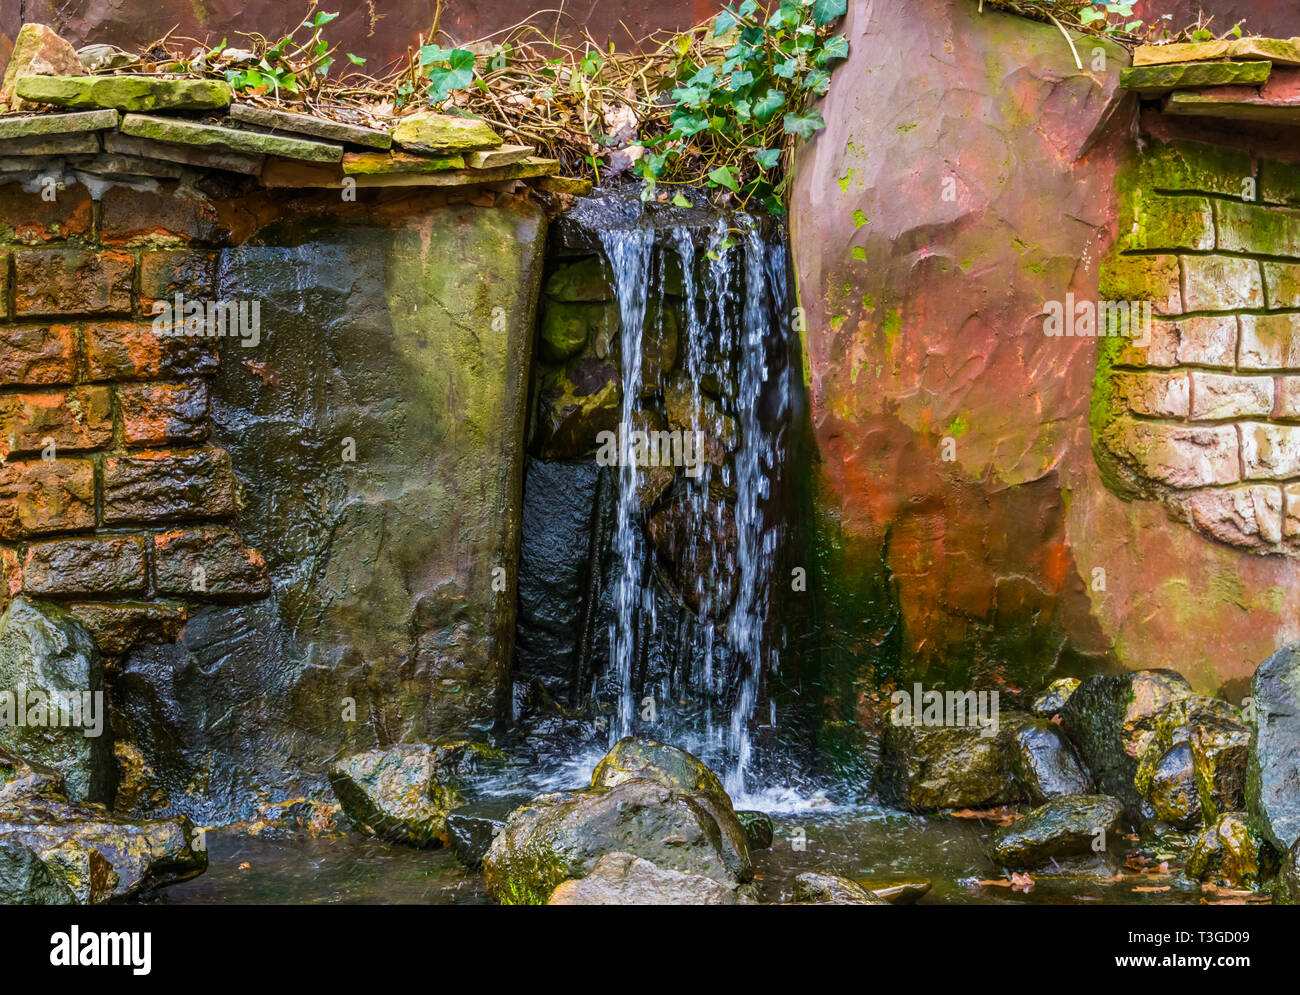 Waterfall With Brook In A Garden Backyard Decorations Streaming